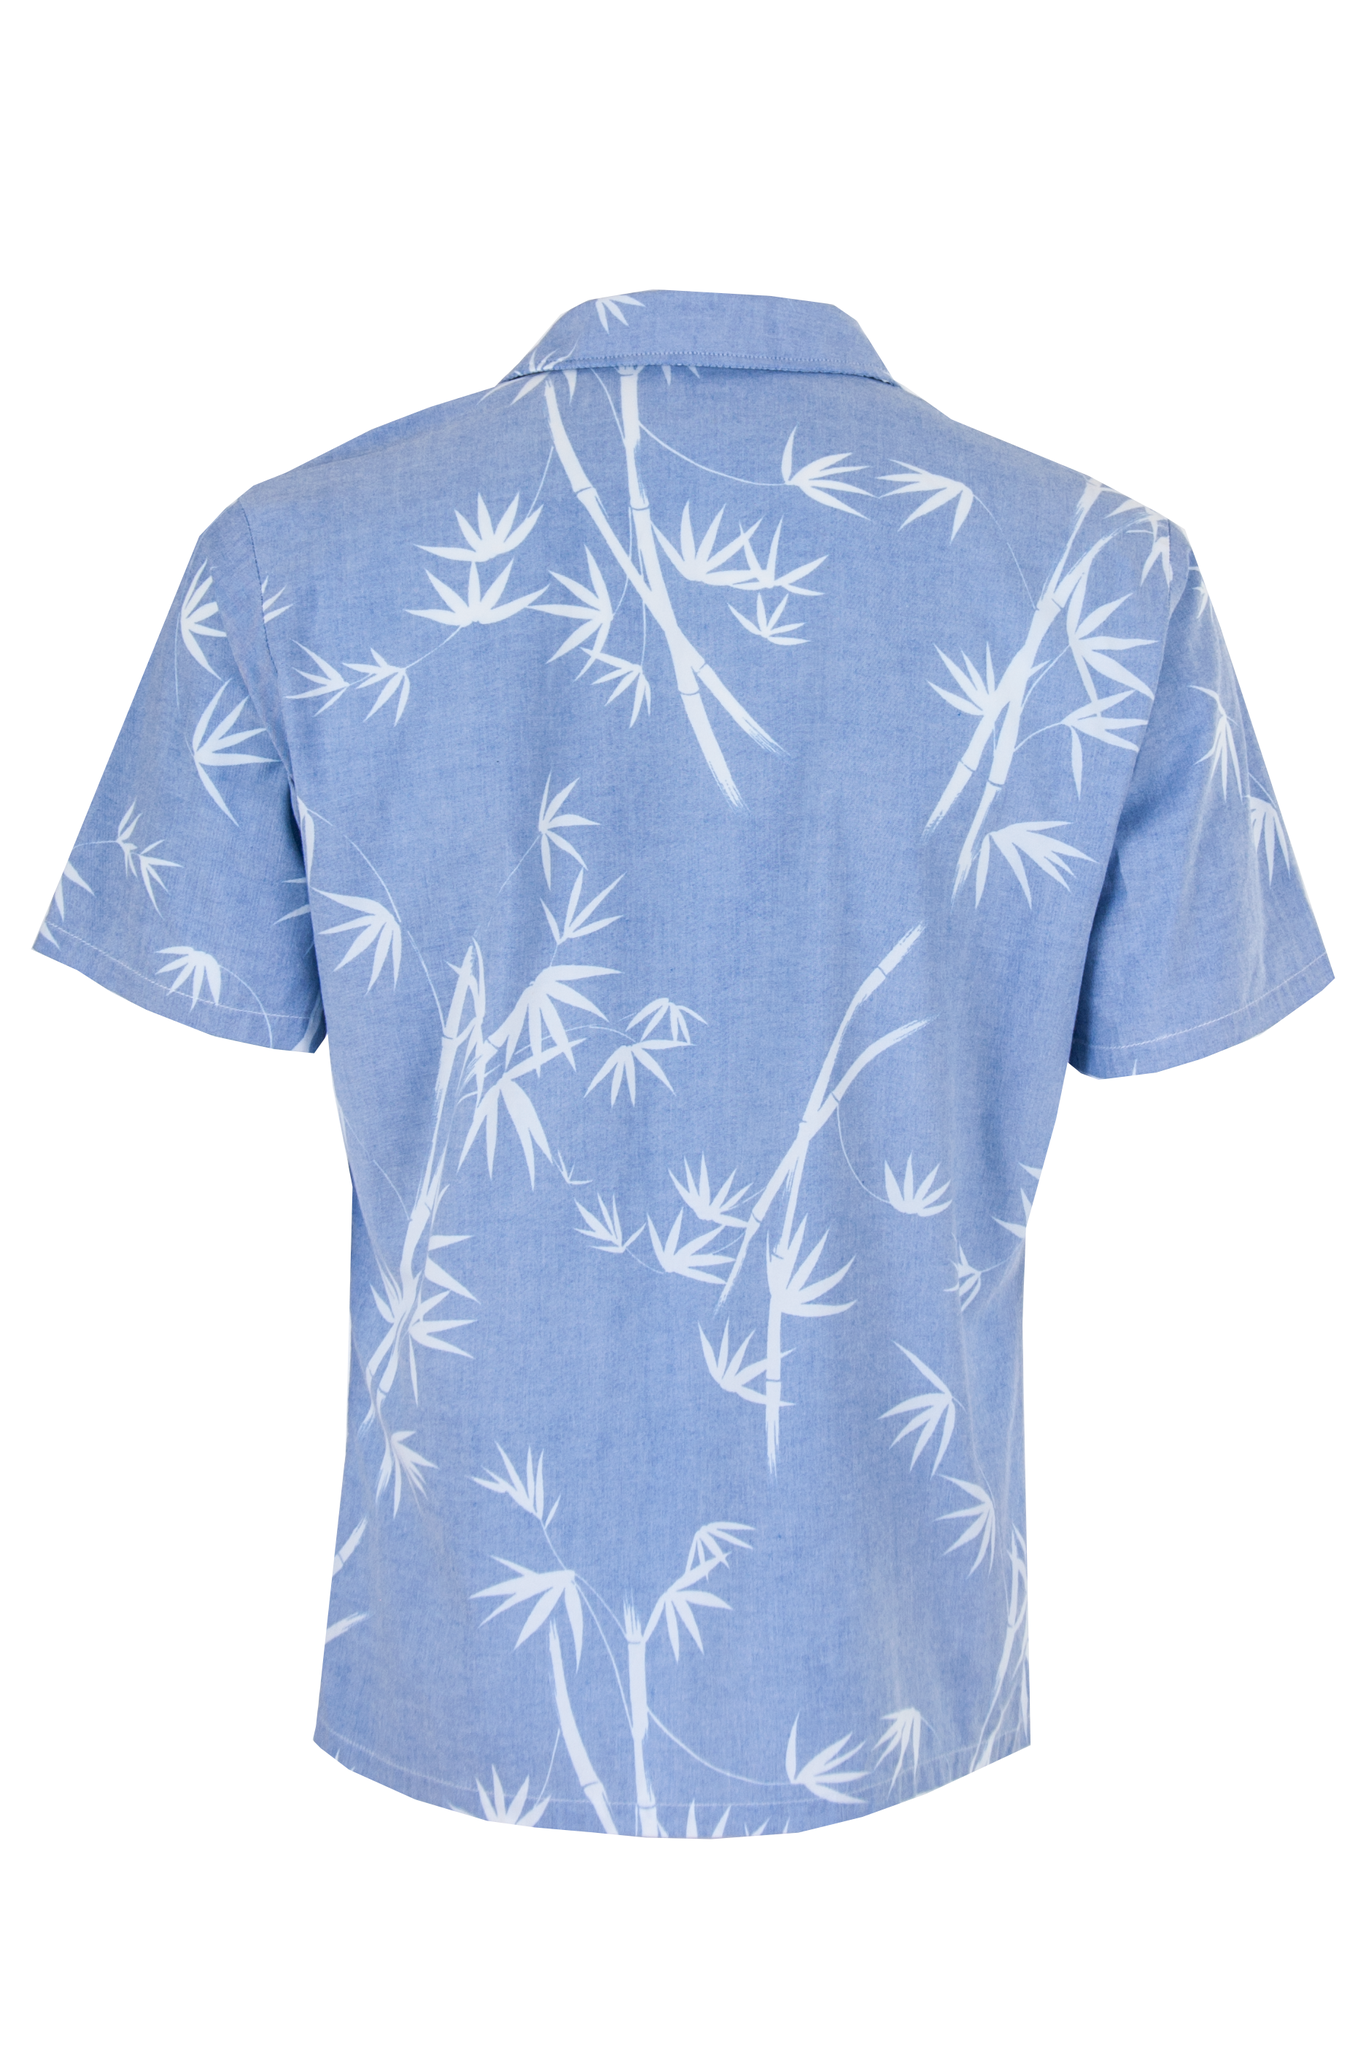 chambray shirt with white leaf print